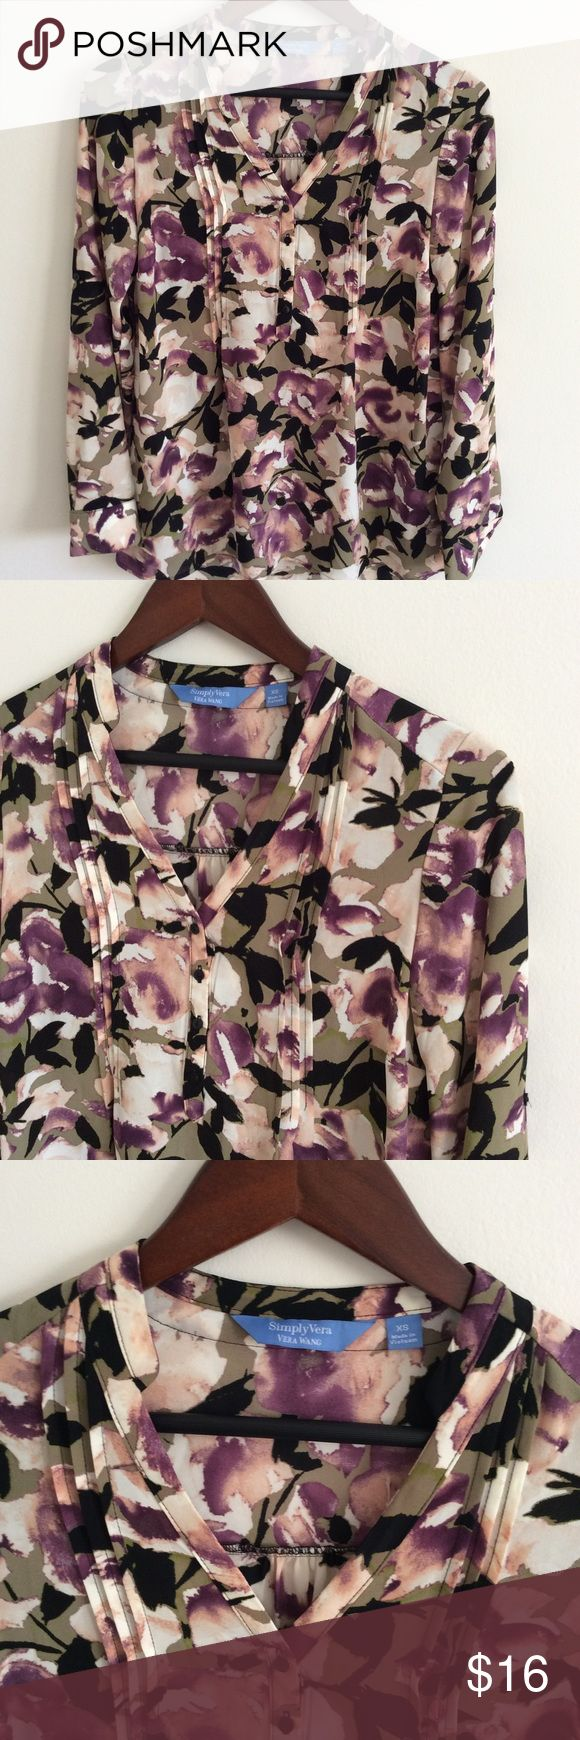 Simply Vera Floral Tunic 👚XS 100% Polyester Simply Vera Floral Tunic. Adjustable sleeves. Size XS. Simply Vera Vera Wang Tops Blouses